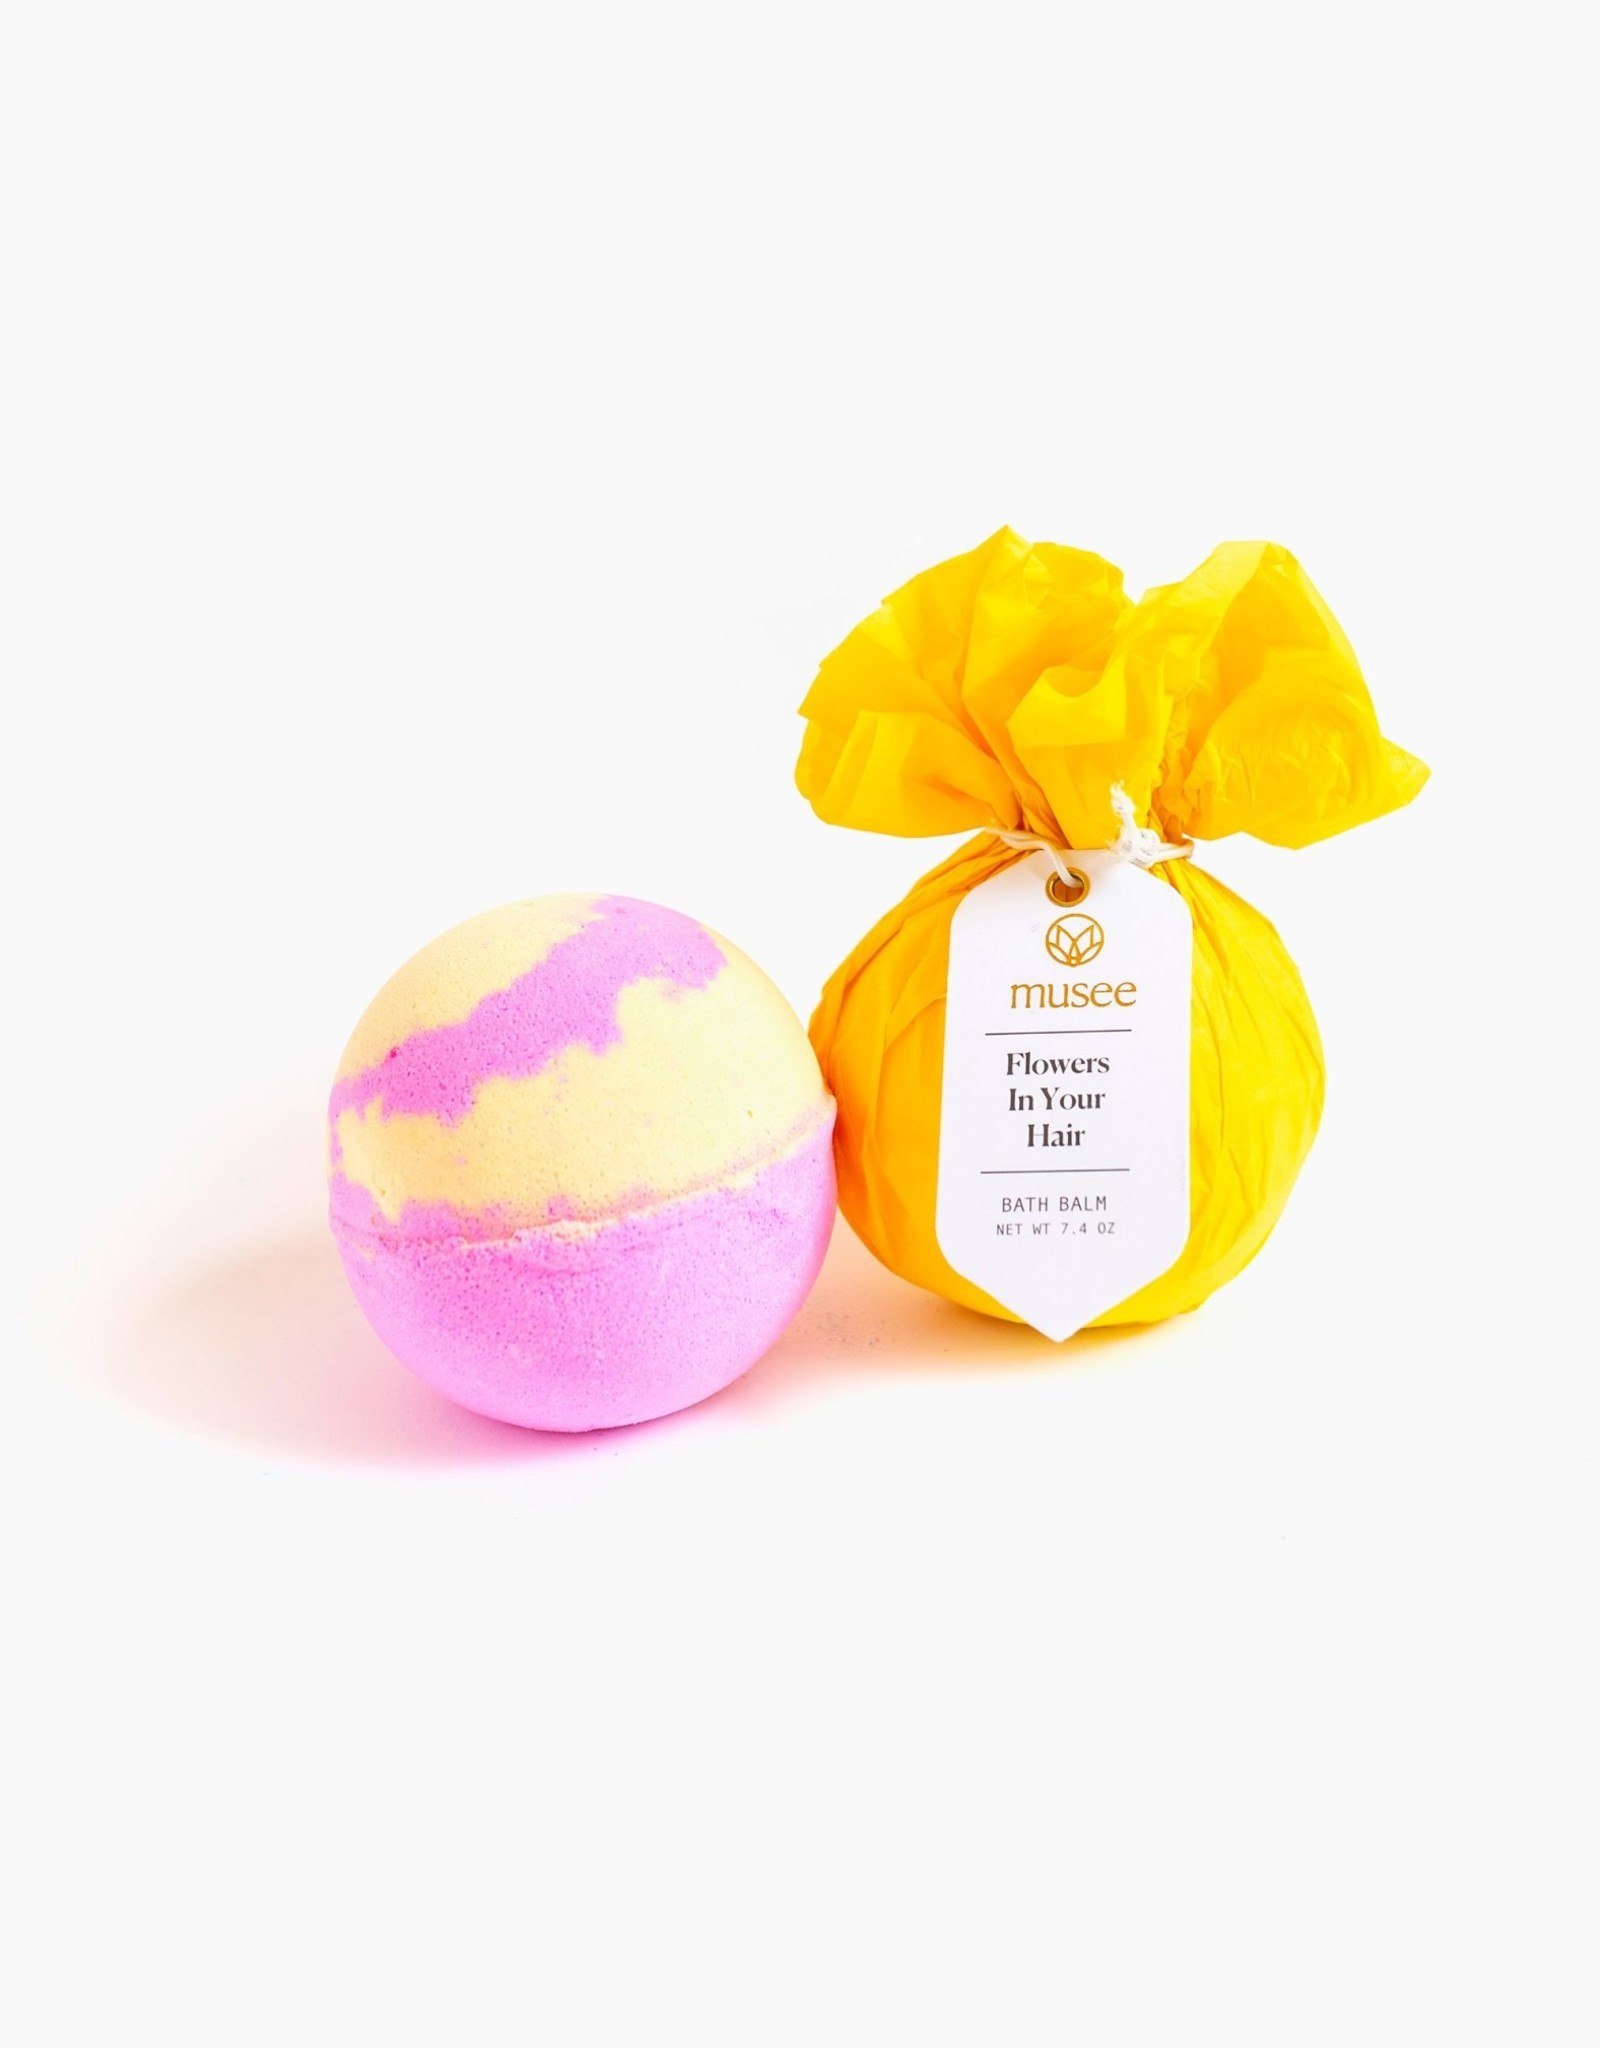 Musee Bath Bomb - Flowers in Your Hair